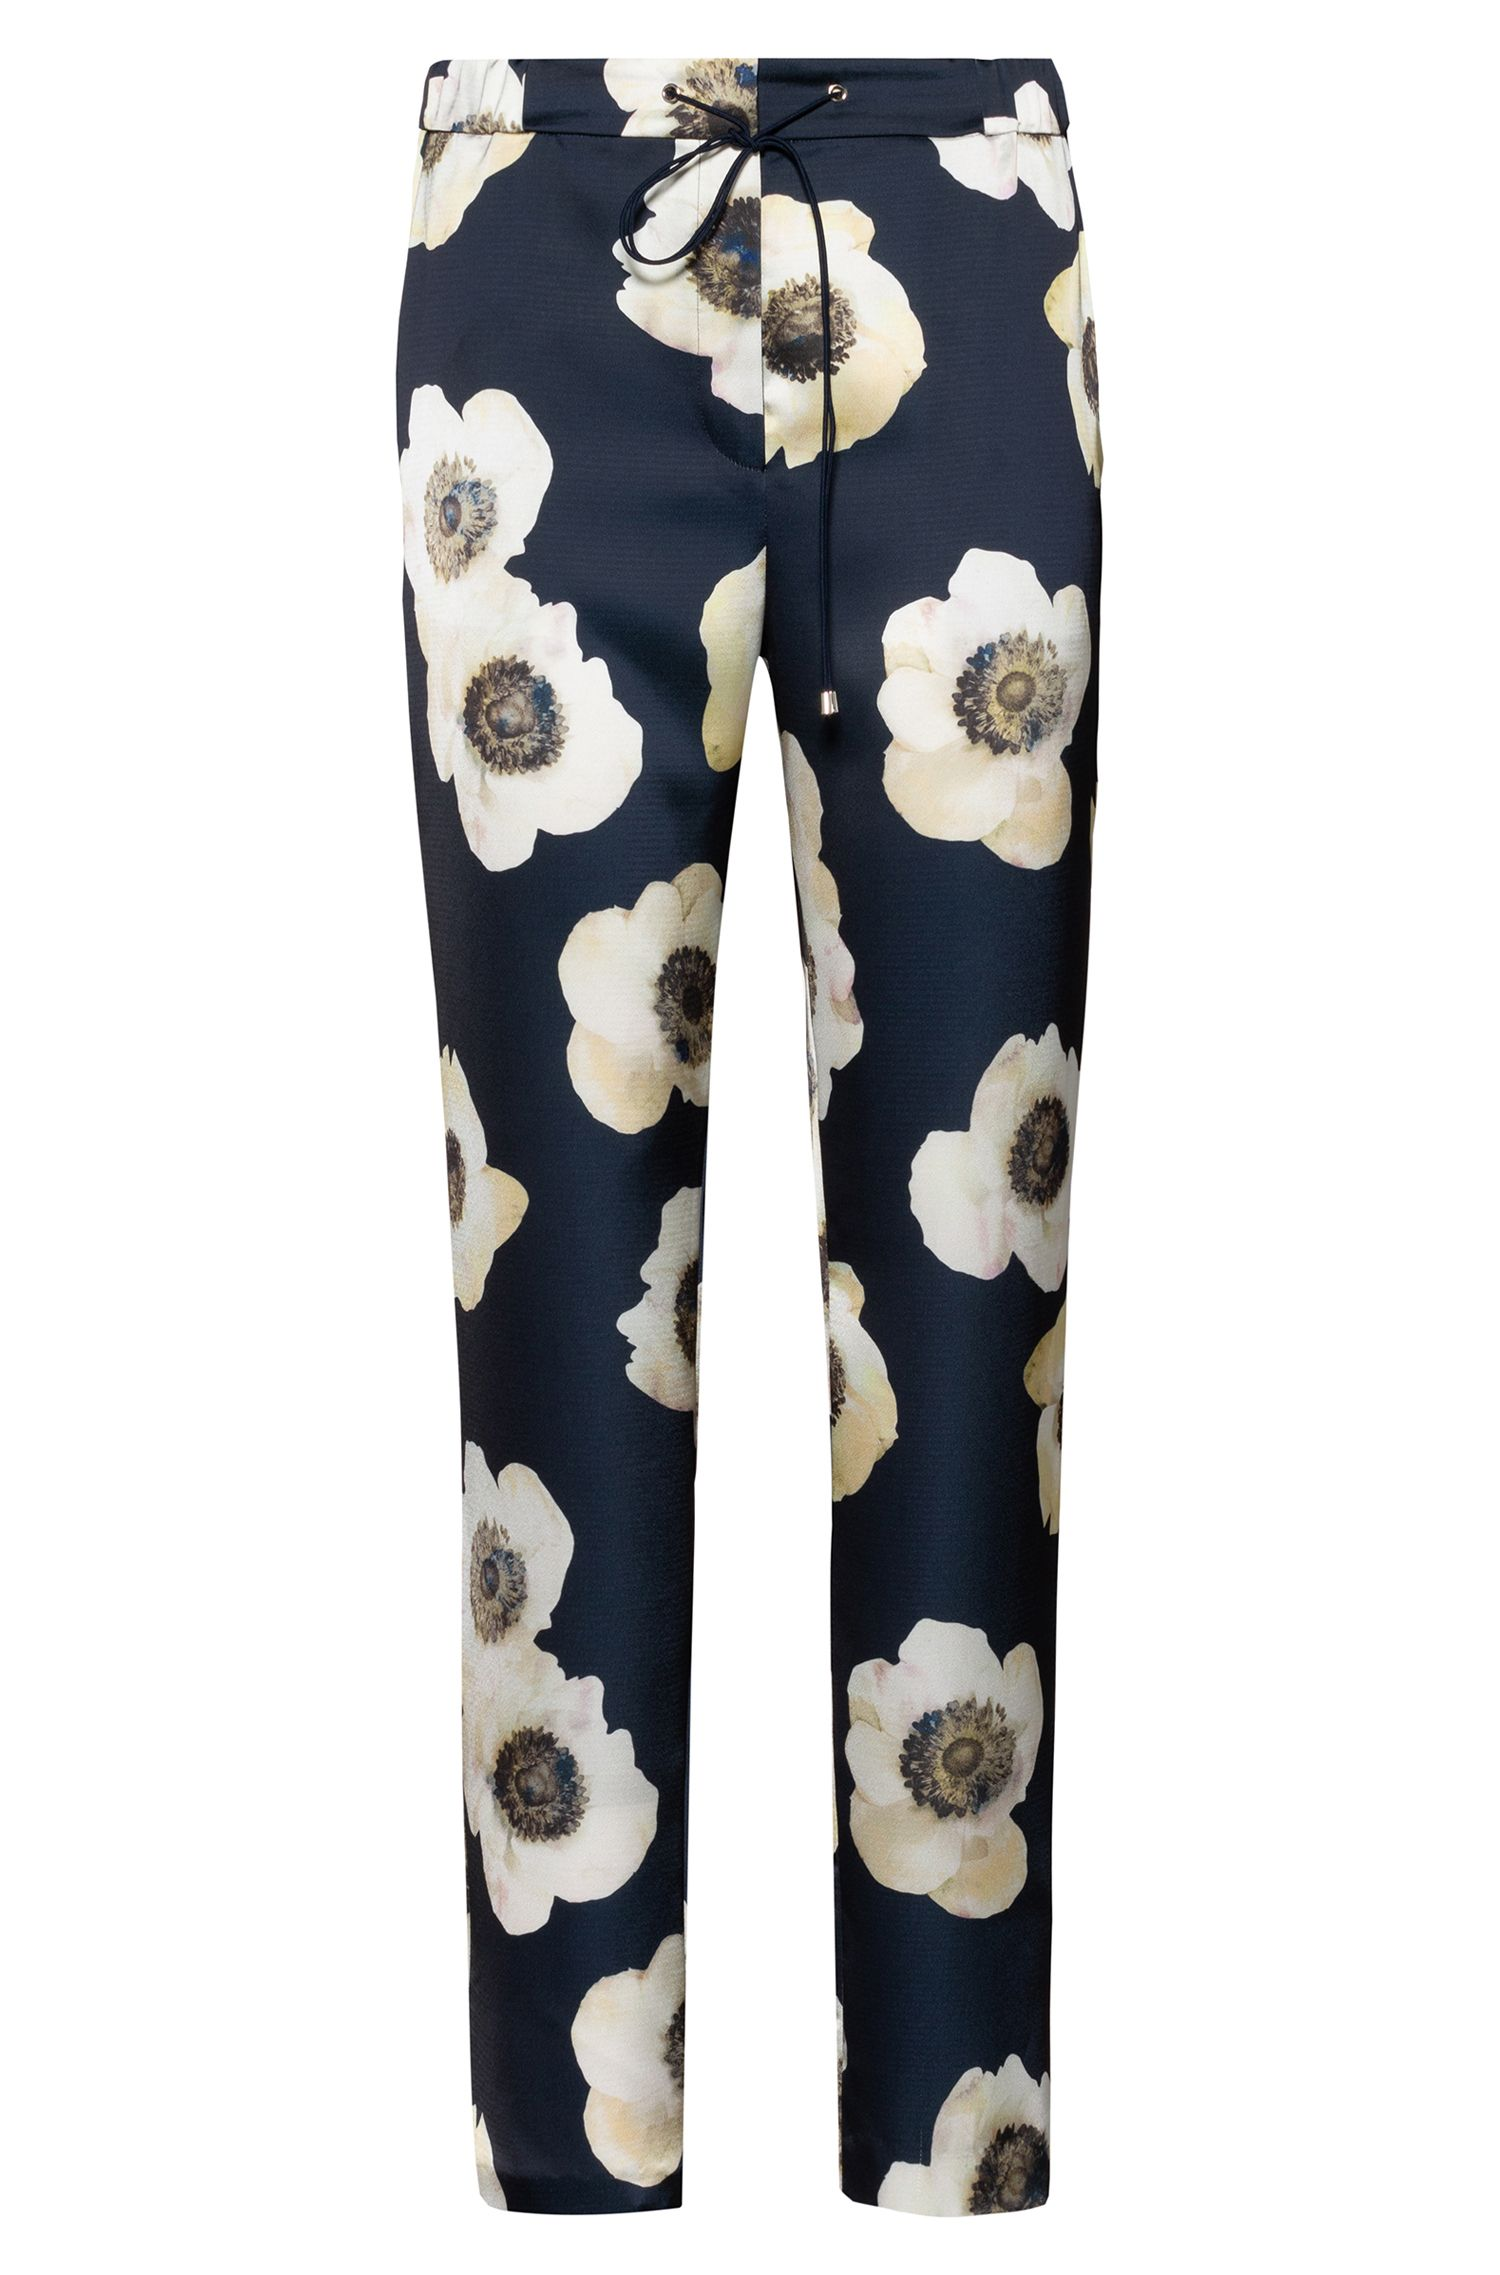 Drawstring pants in hammered fabric with anemone print, Patterned